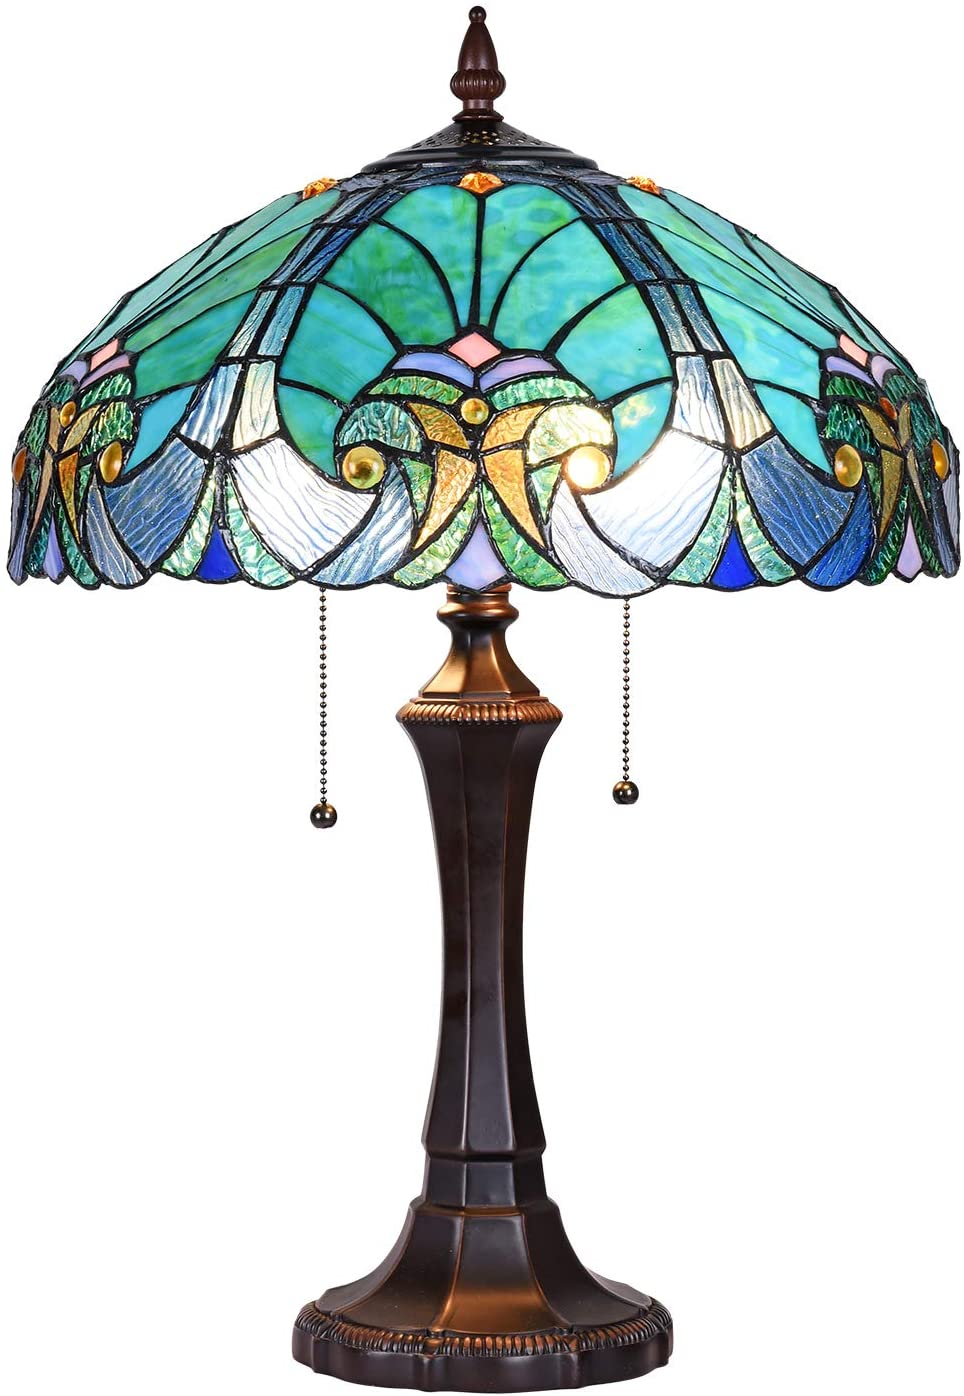 Cotoss Tiffany Style Table Lamp, 2-Light Tiffany Table Light, 16 inch Wide Blue Stained Glass Table Lamp, Tiffany Style Desk Lamp for Living Room, Bedroom